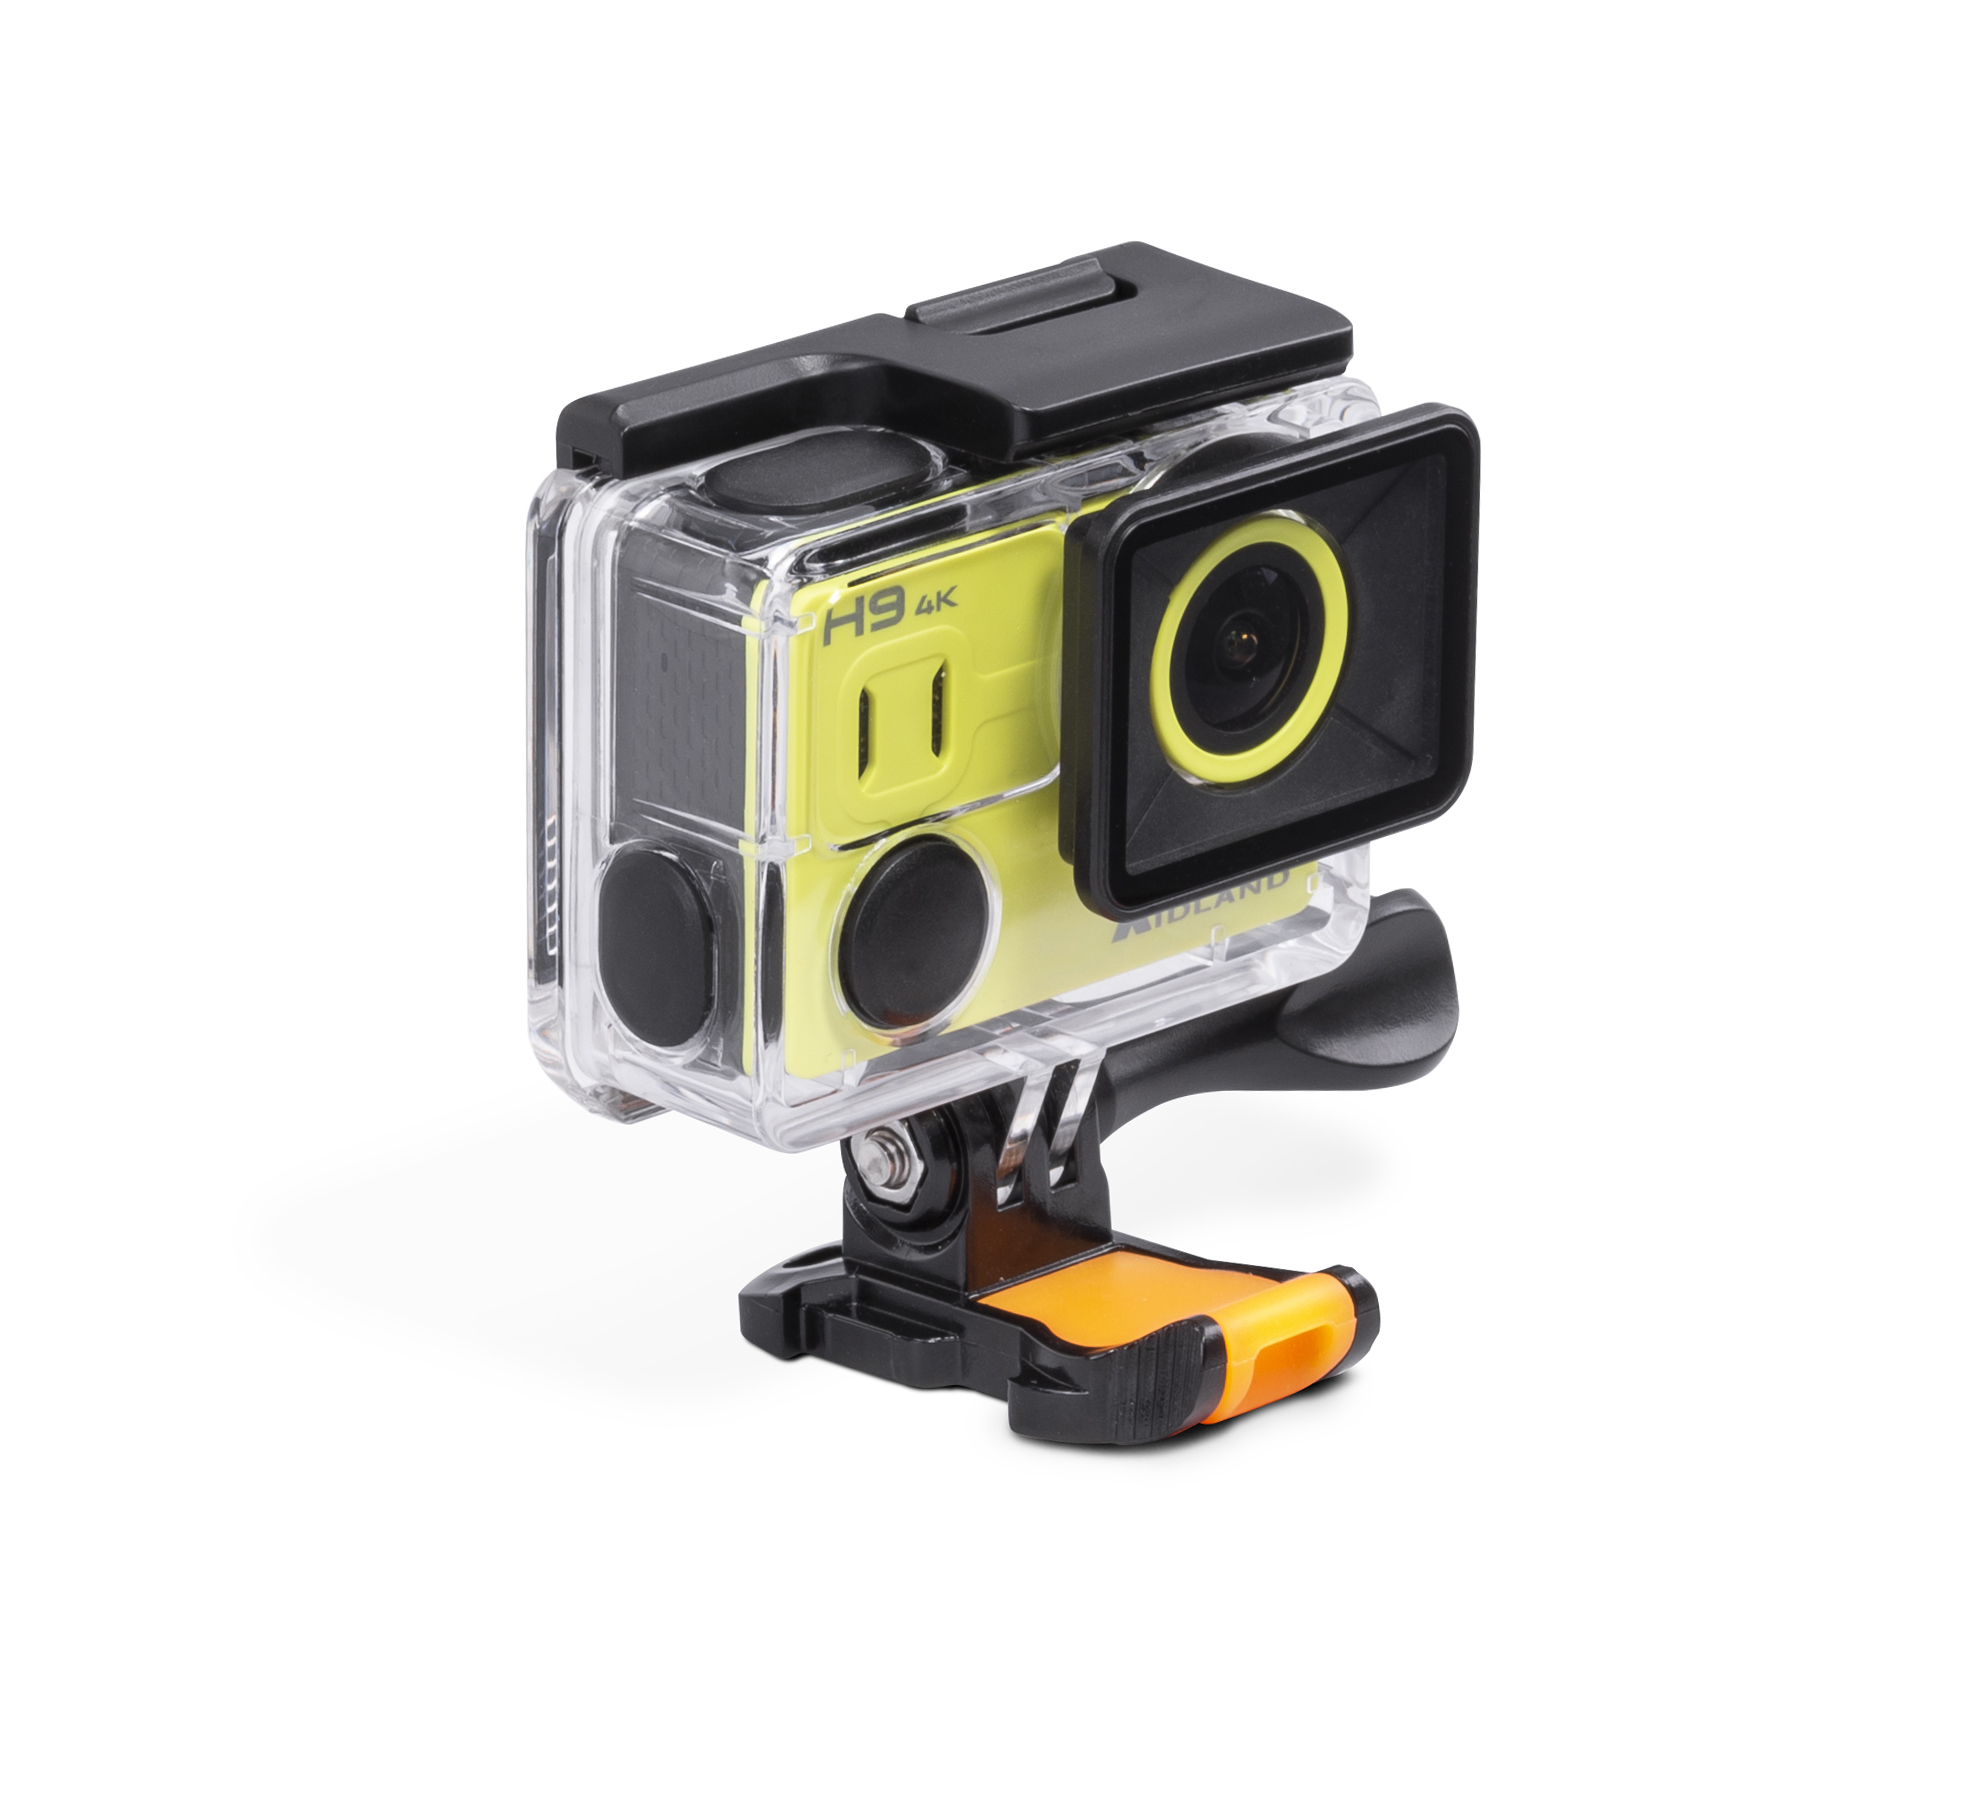 "H9 ACTION CAMERA 4K WITH 2"" SCREEN"